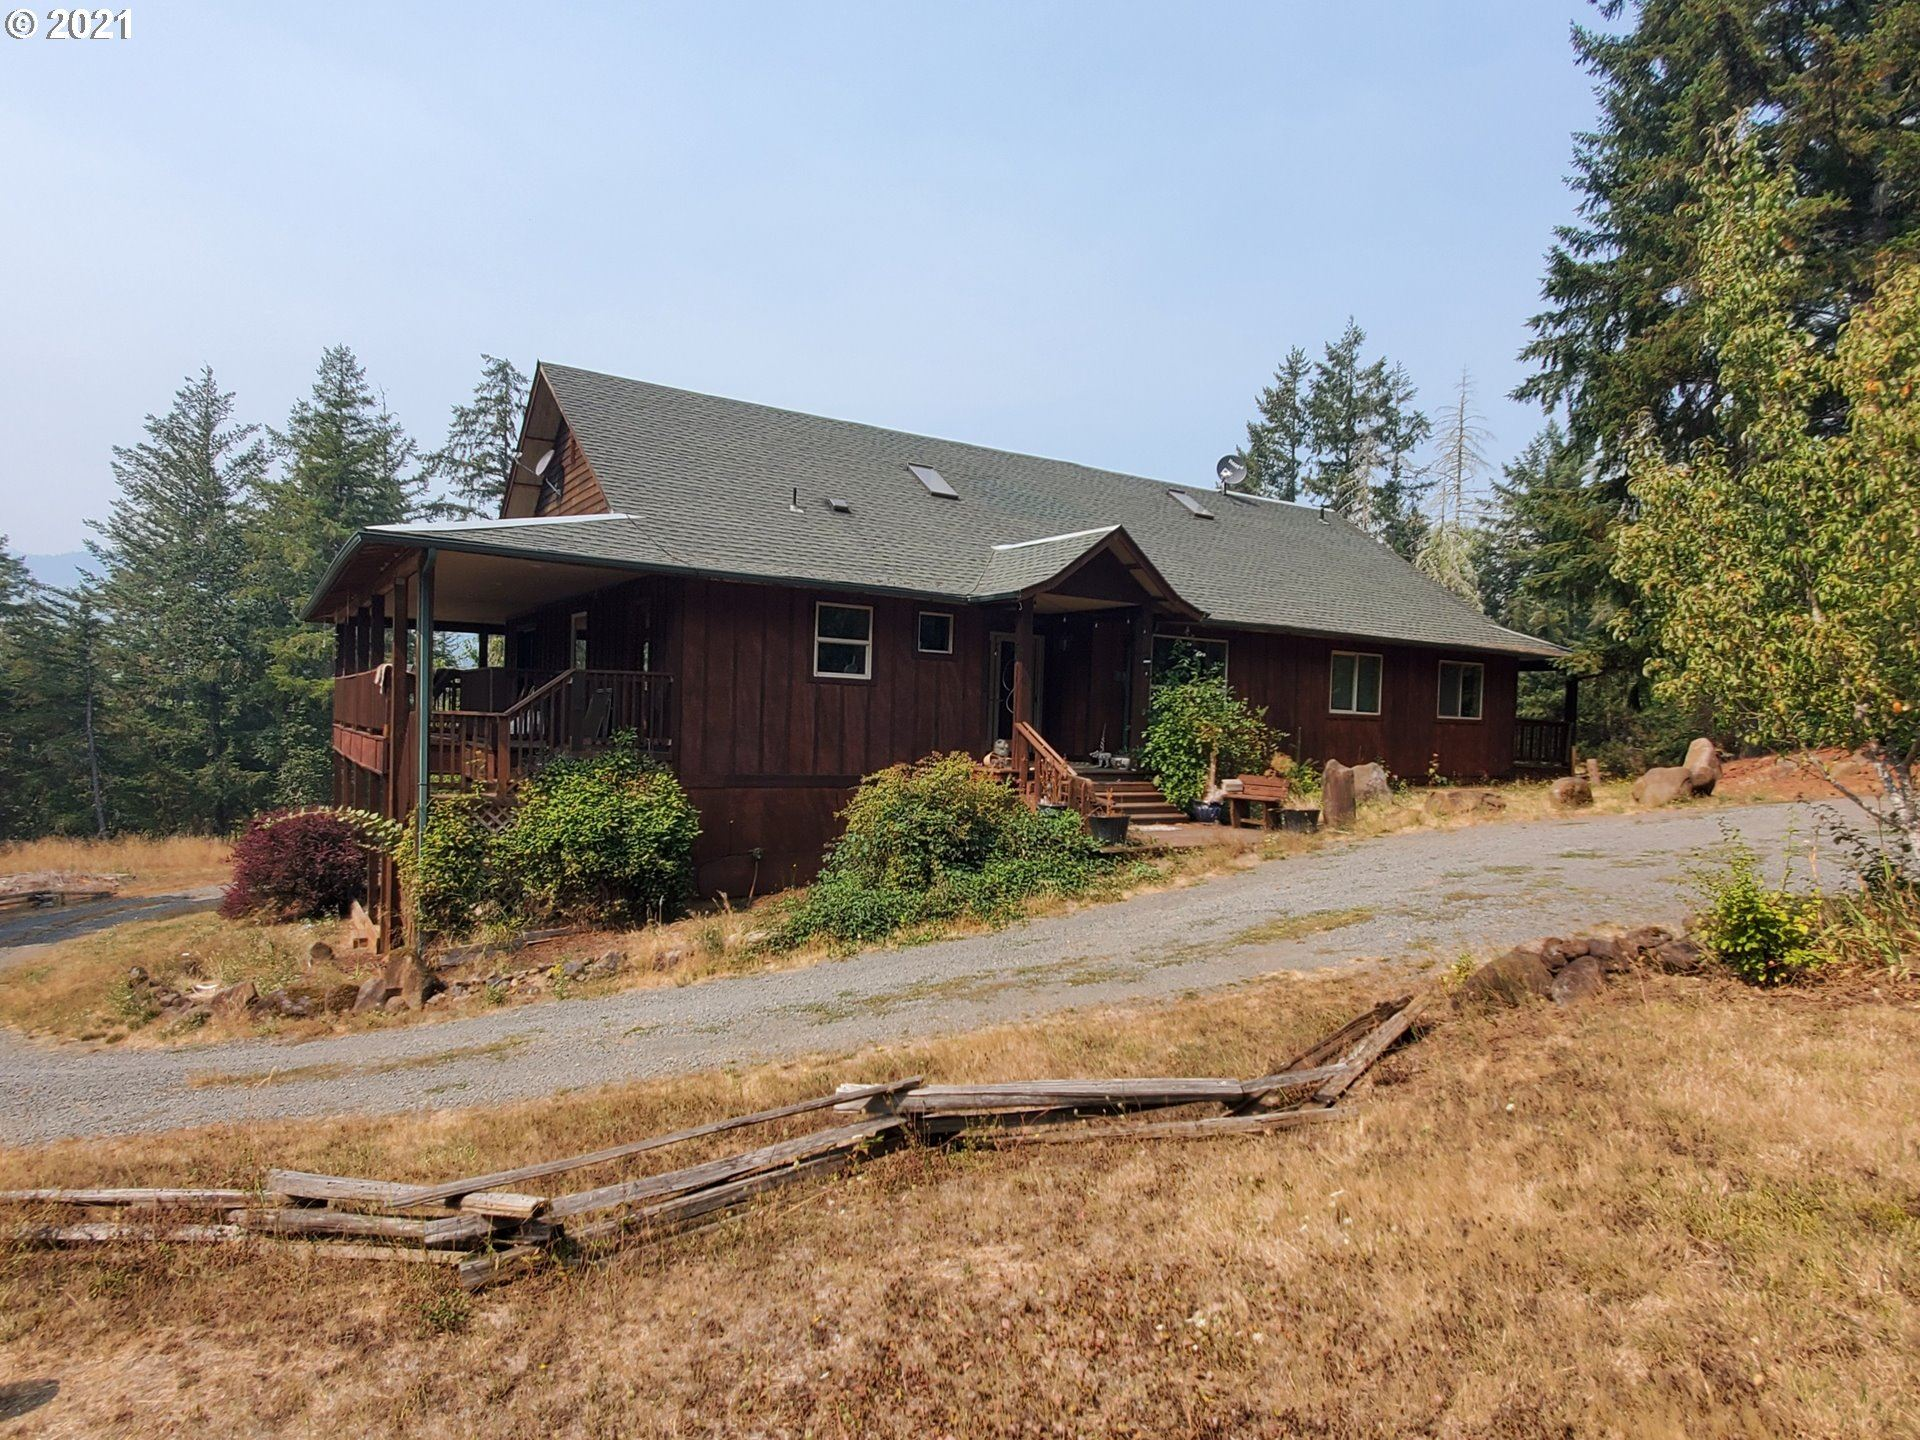 Photo for 39360 EAGLES REST RD, Dexter, OR 97431 (MLS # 21274954)